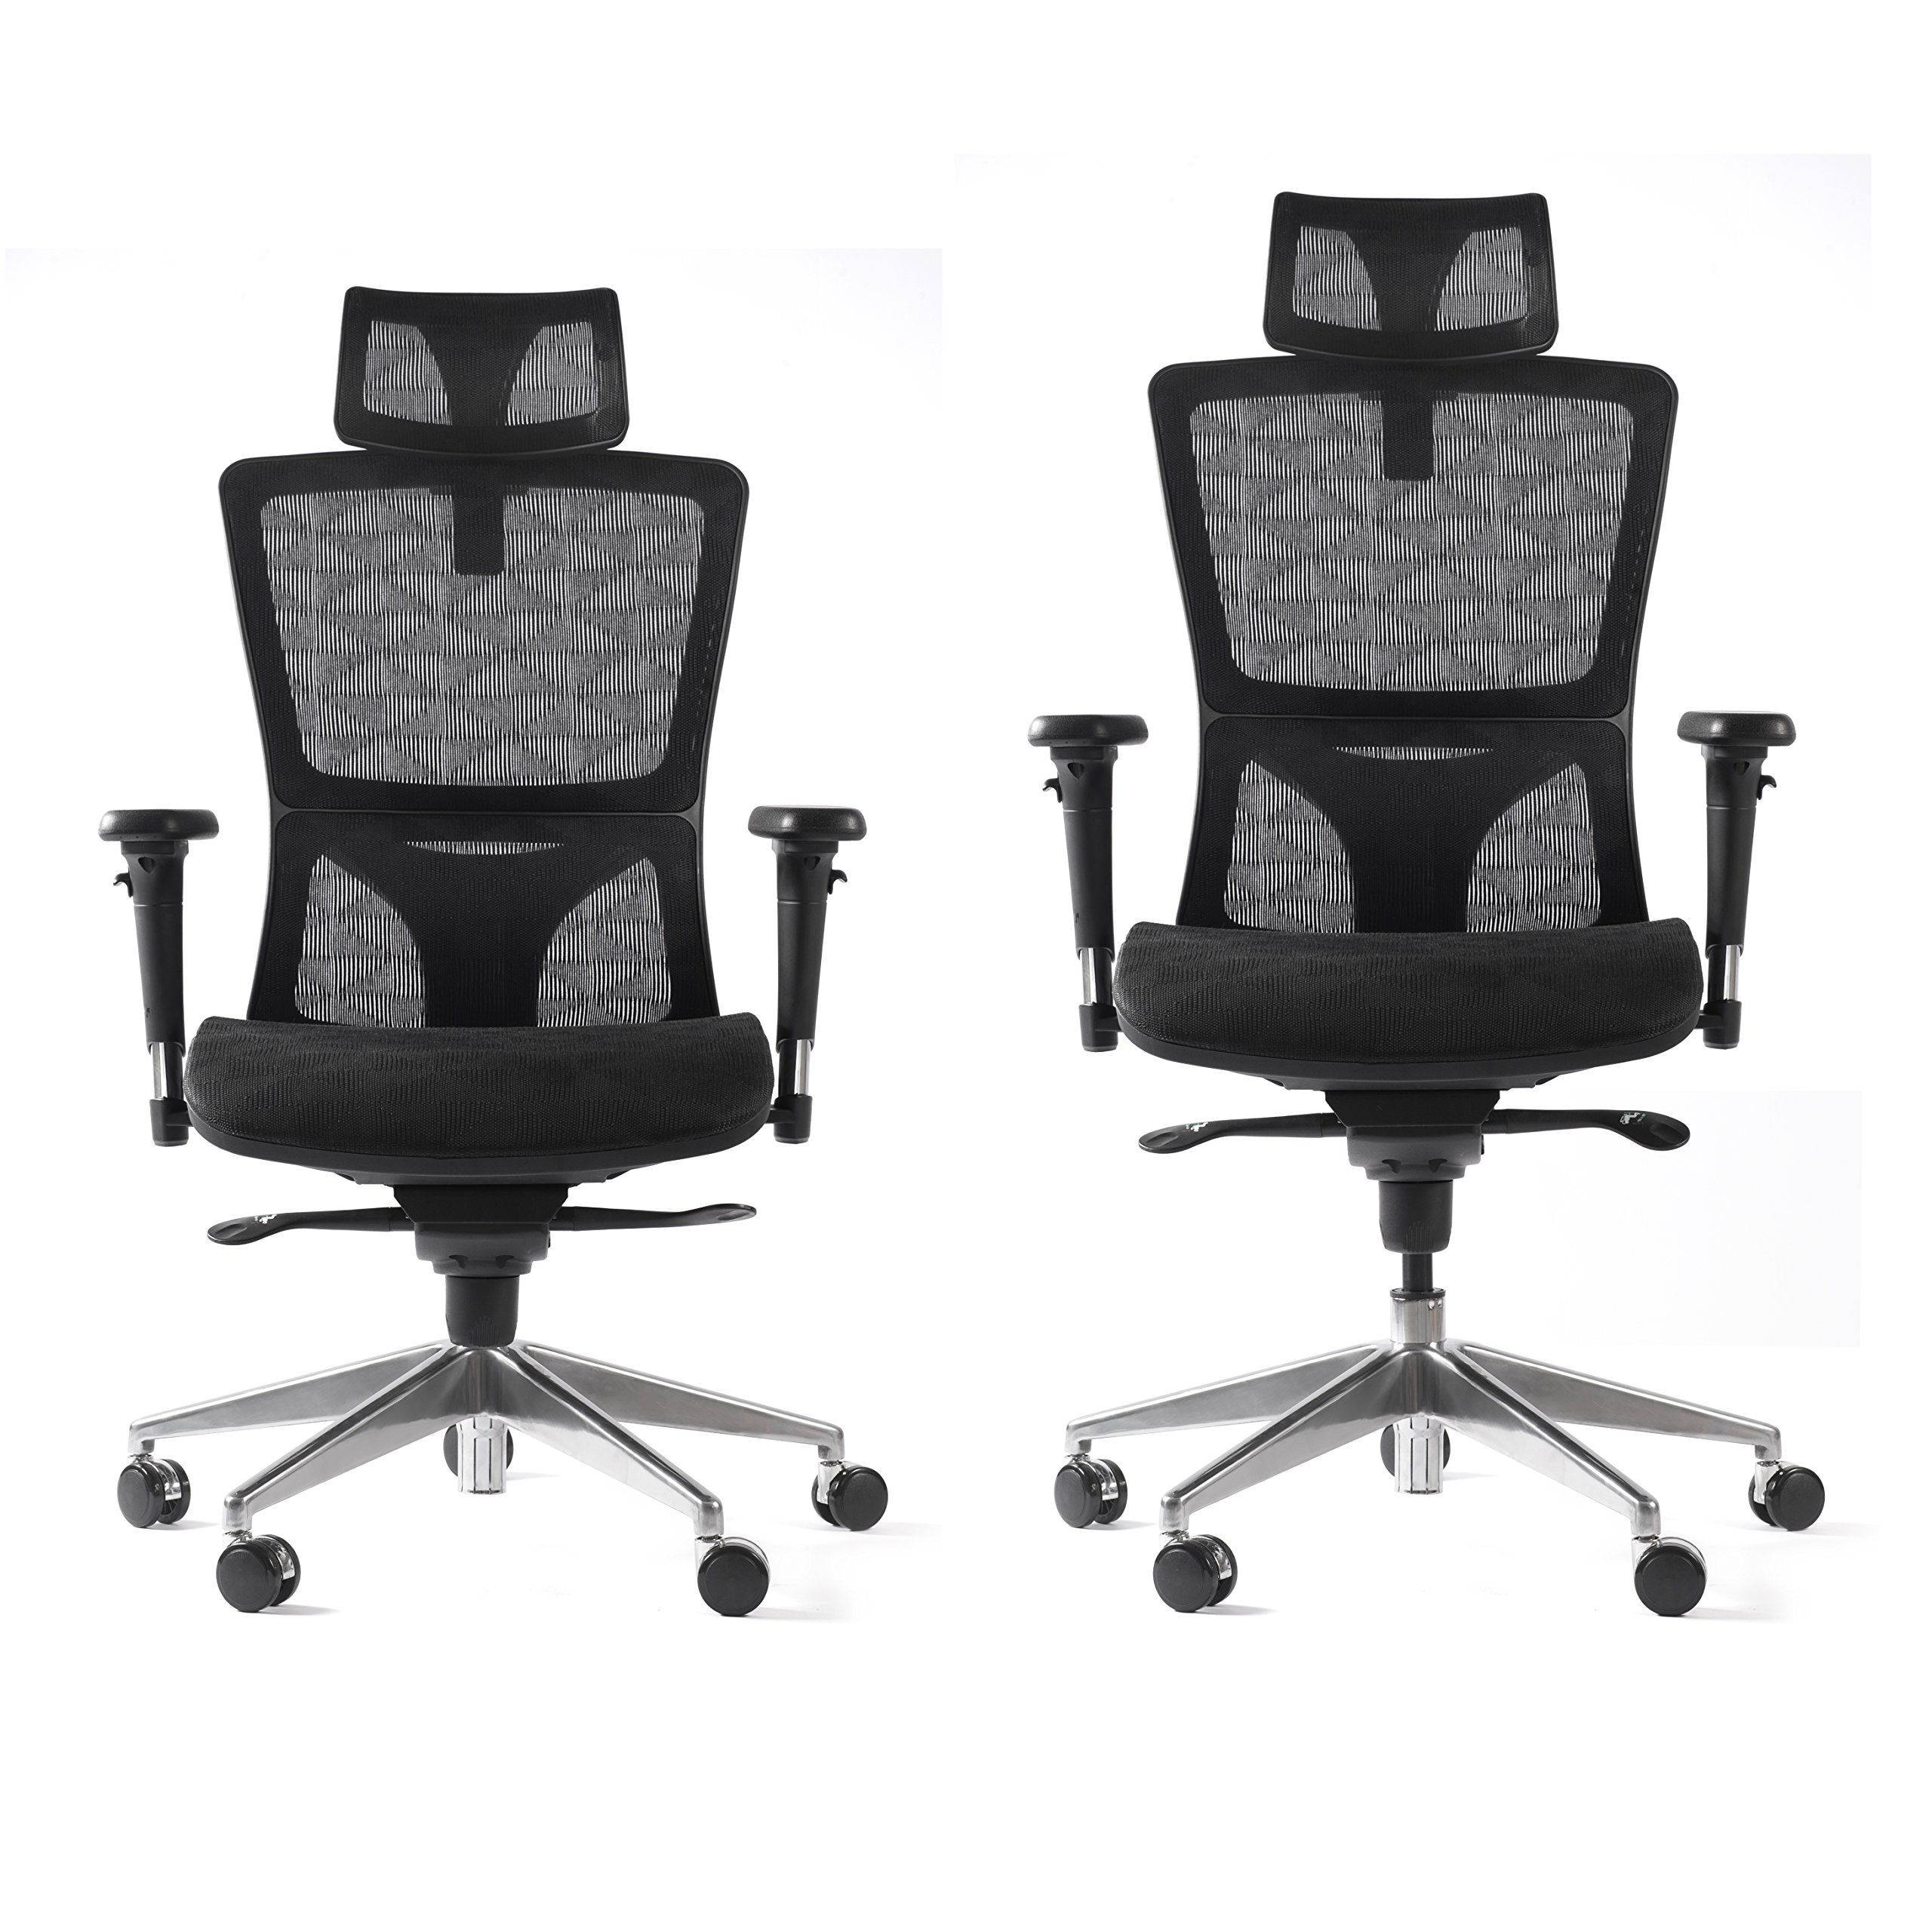 CCTRO High Back Mesh Ergonomic Office Chair with